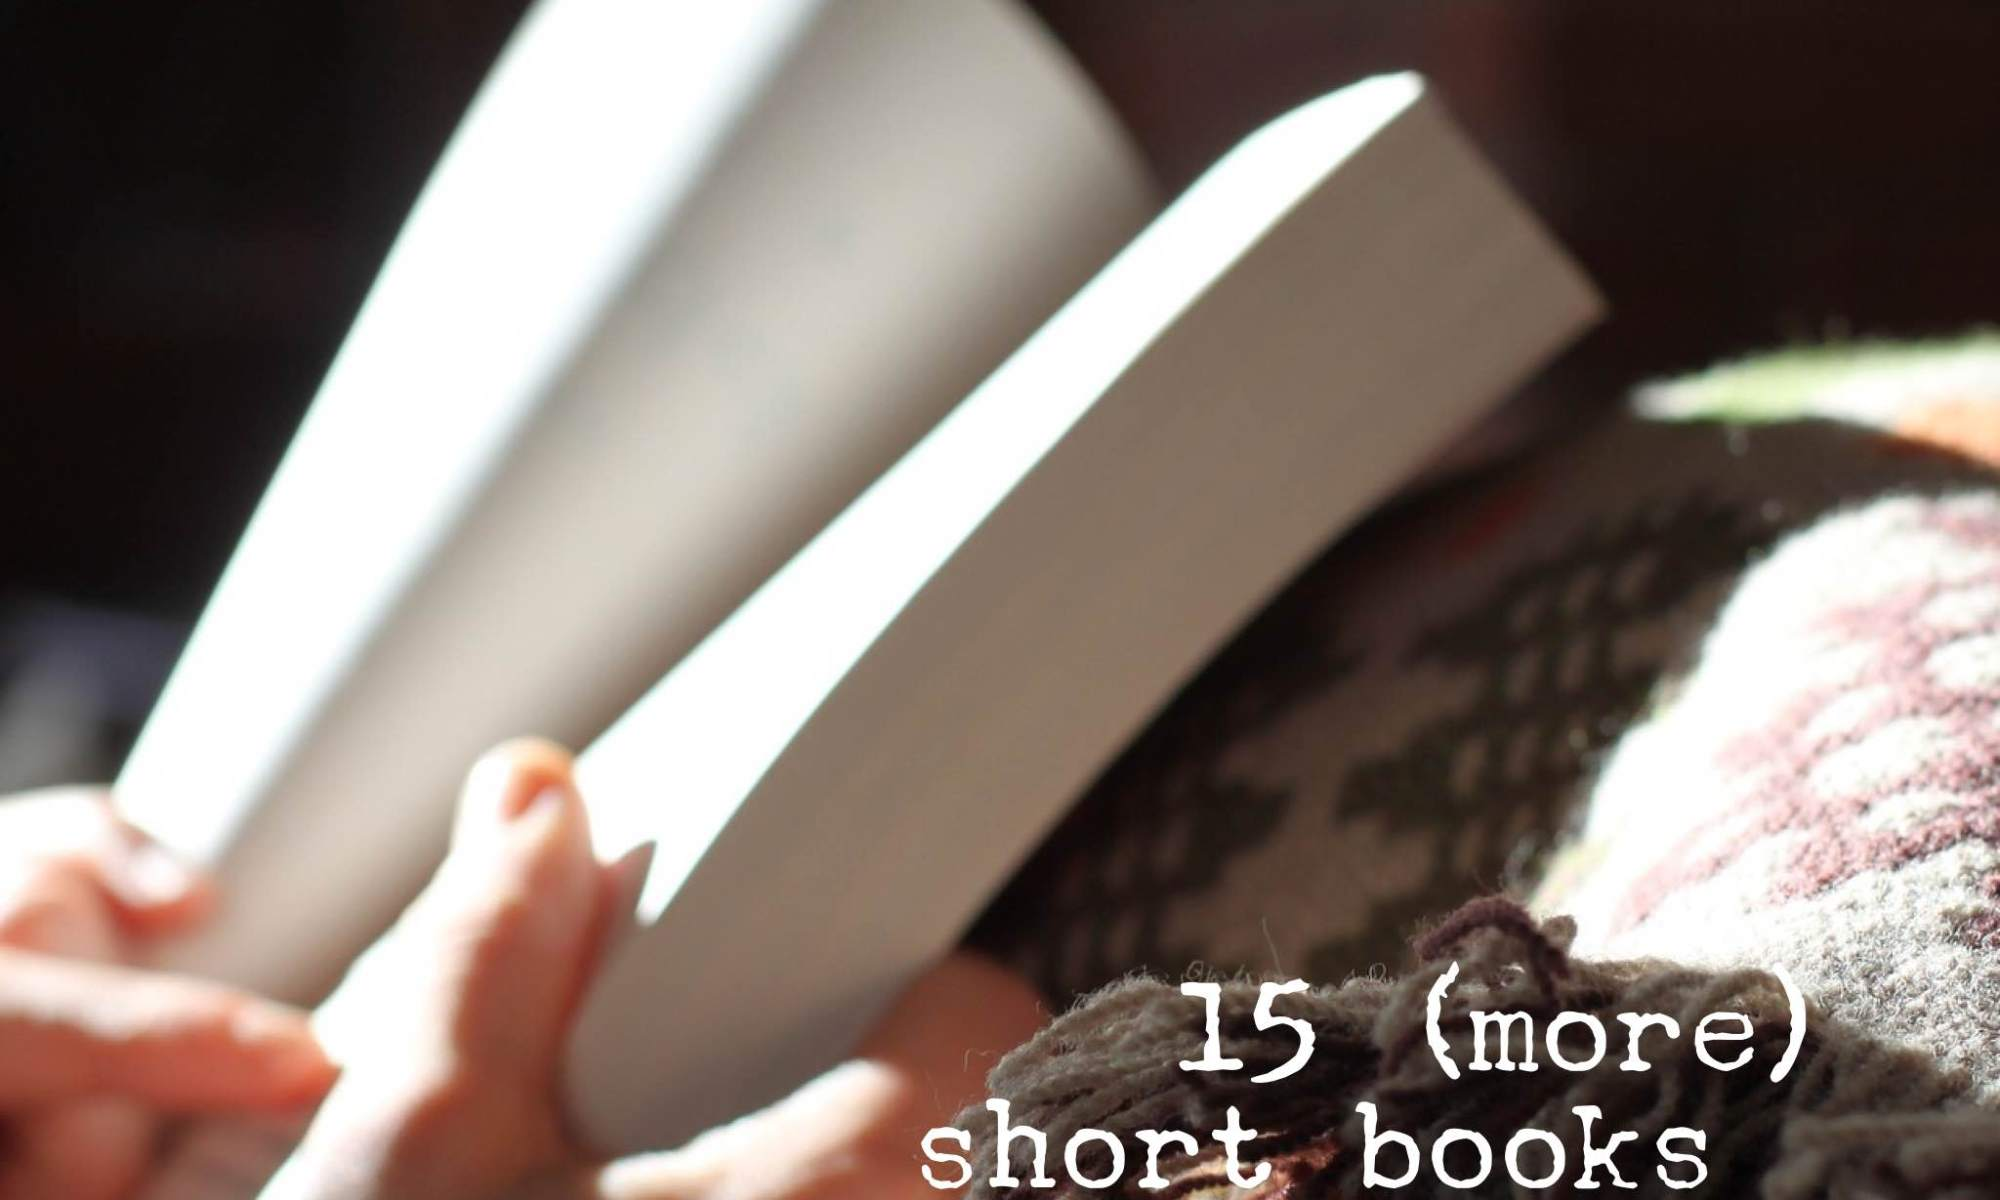 For other readers who enjoy short books, whatever the reason(s), a (second) list of 15 excellent short books good for reading straight through.